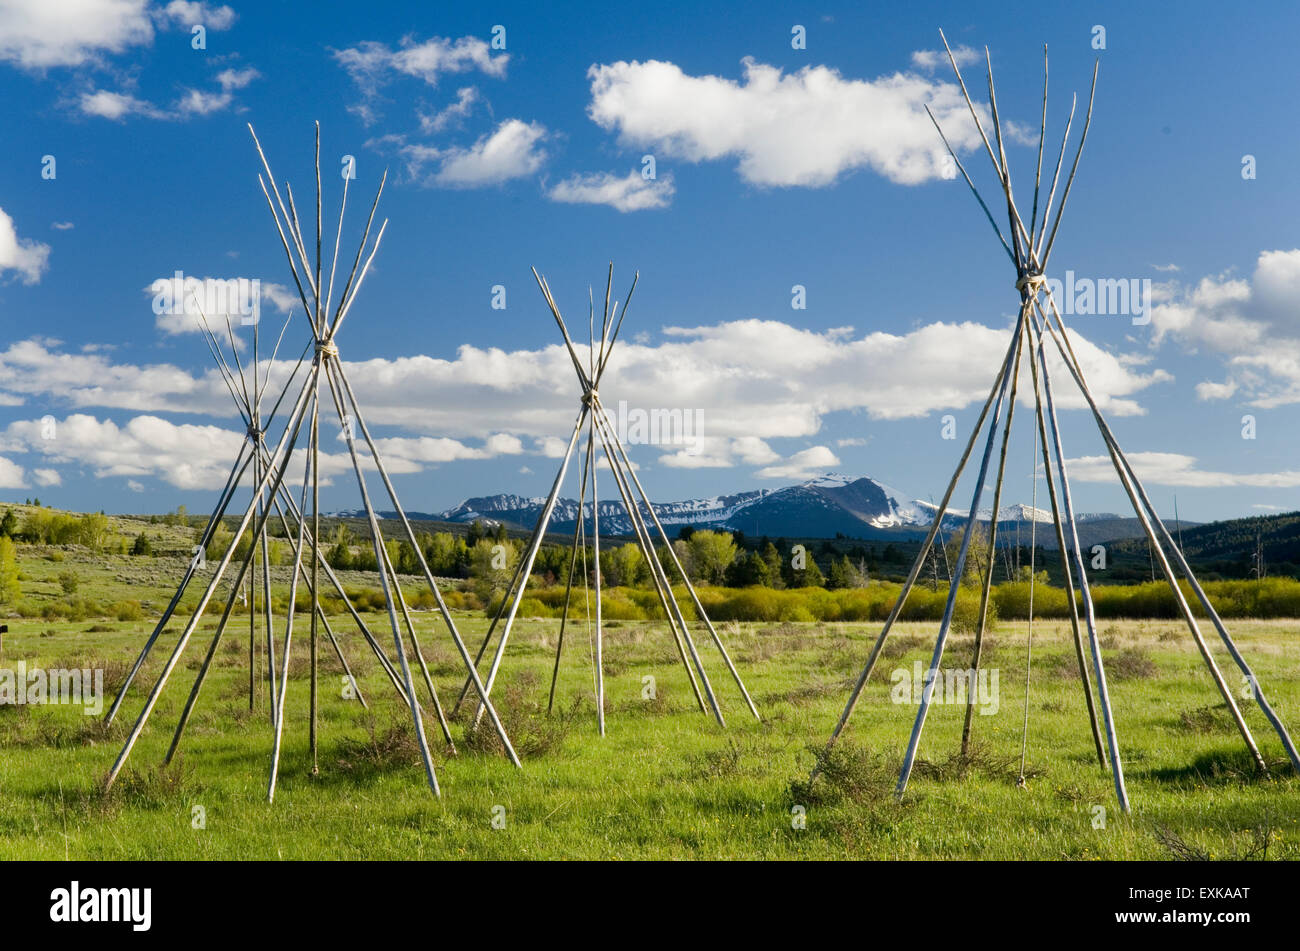 Tepee frames denoting and memorializing the Nez Perce camp at Big Hole National Battlefield Montana - Stock Image